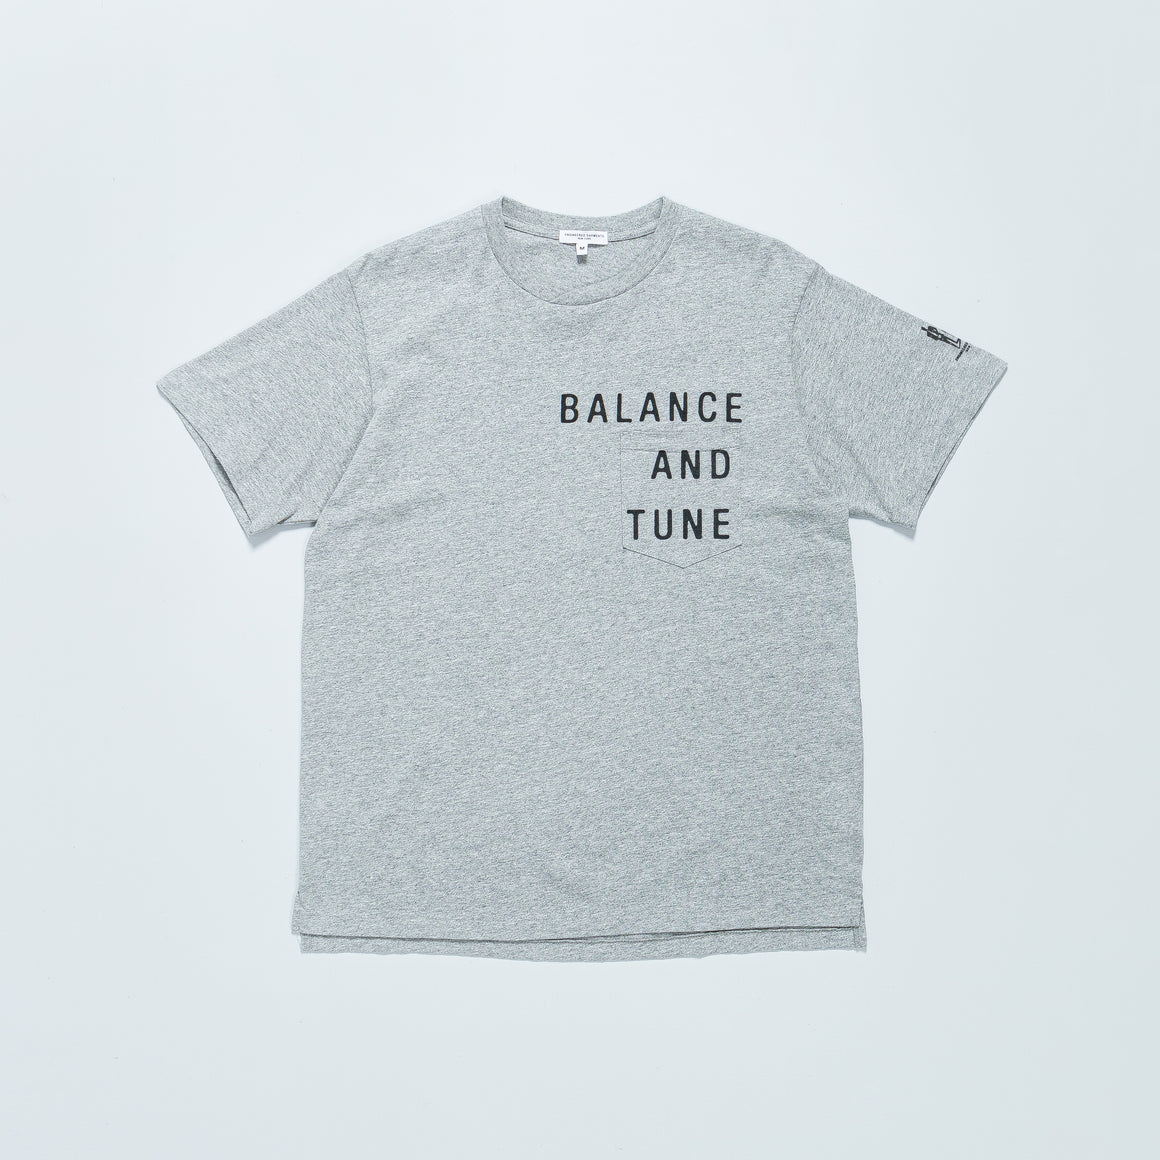 Engineered Garments - Printed Cross Crewneck T-Shirt - Grey w/ Balance Print - Up There